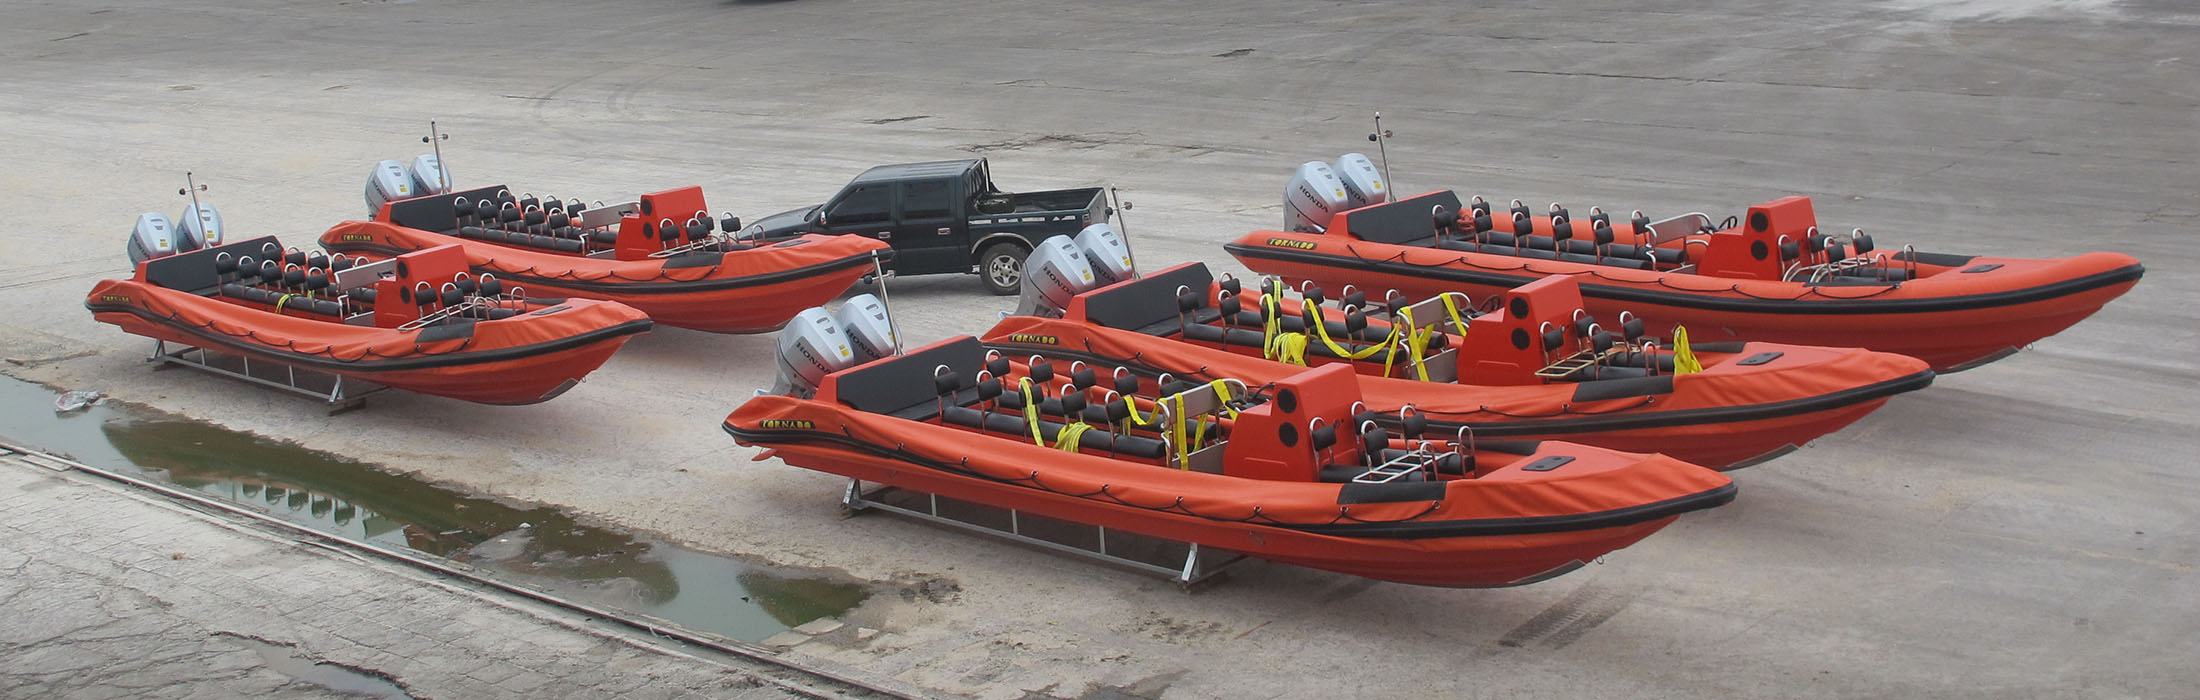 five large orange ribs from Tornado Boats